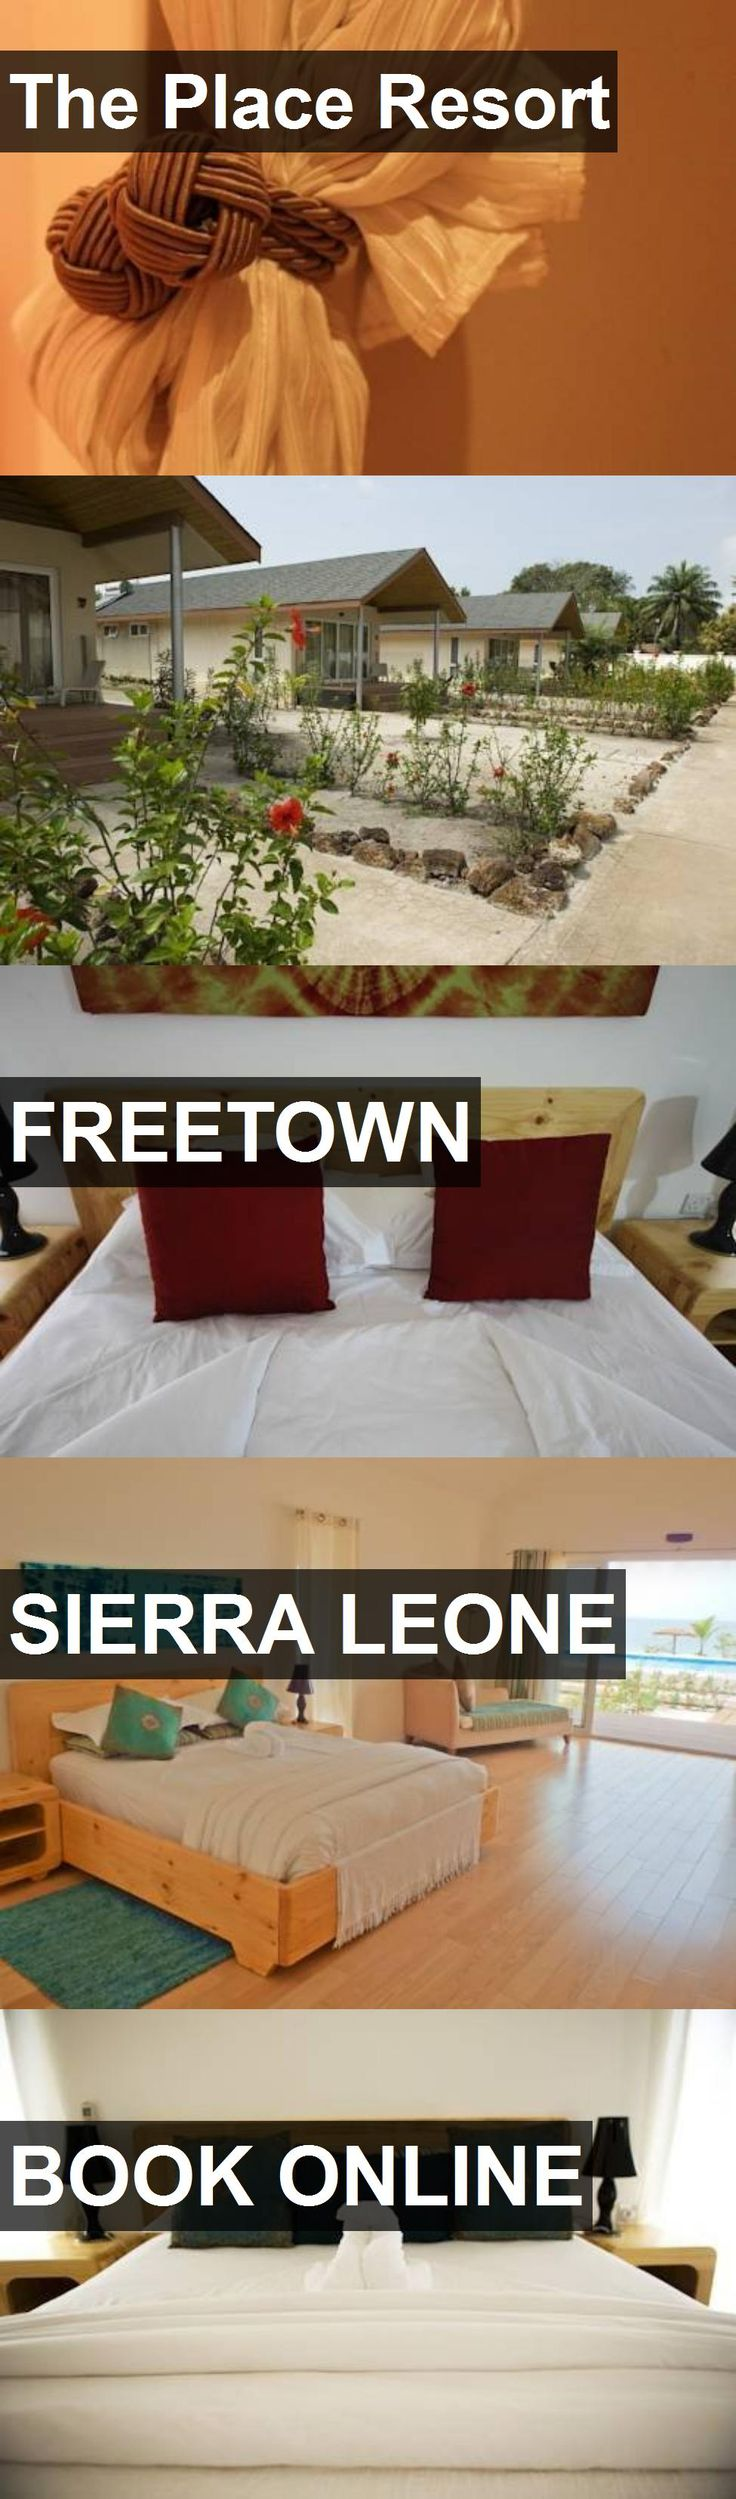 Hotel The Place Resort in Freetown, Sierra Leone. For more information, photos, reviews and best prices please follow the link. #SierraLeone #Freetown #travel #vacation #hotel